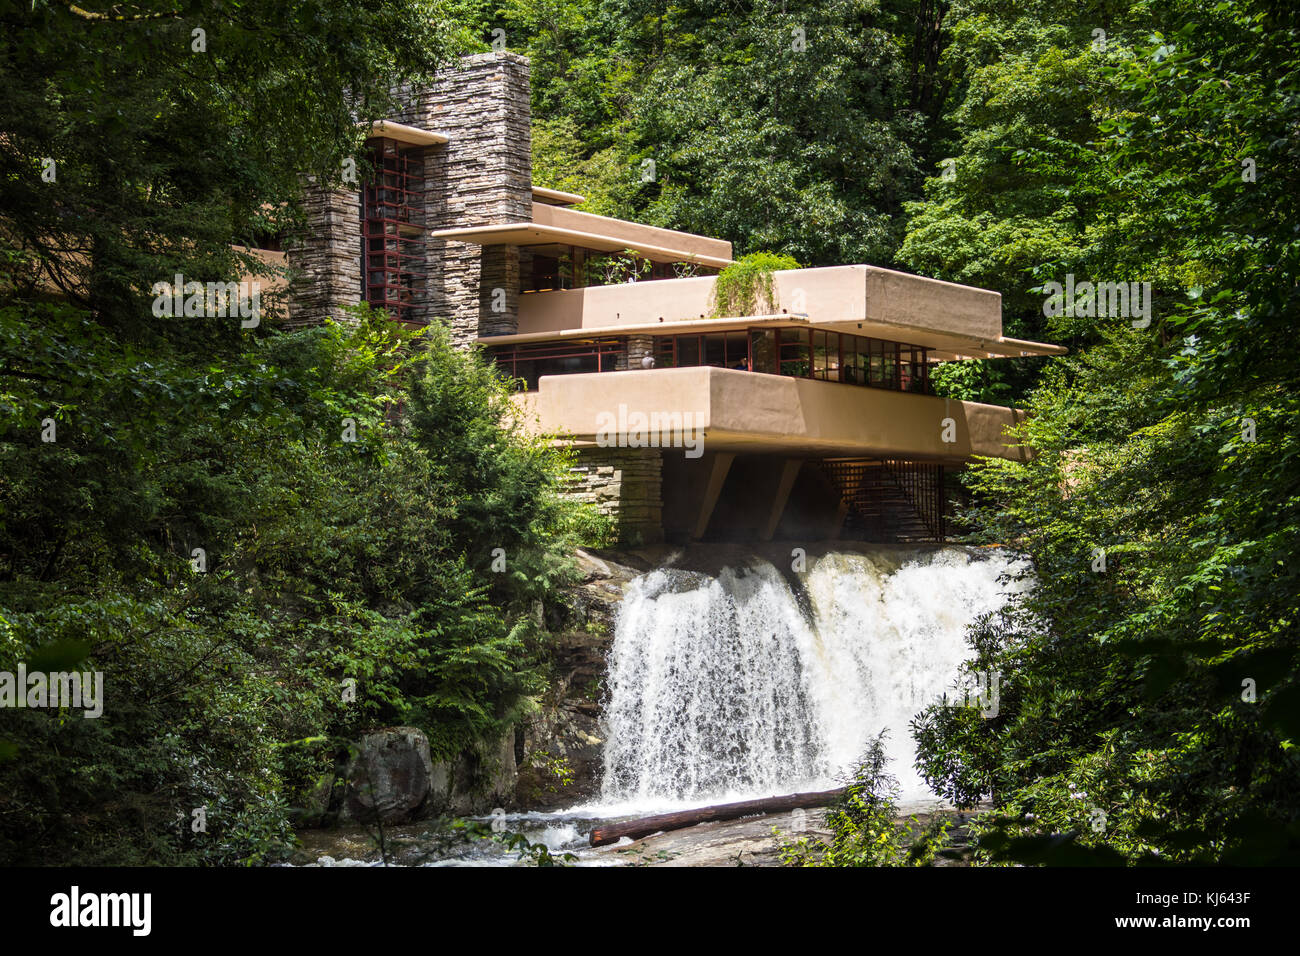 Falling Water House Usa Fallingwater House Stock Photos Fallingwater House Stock Images